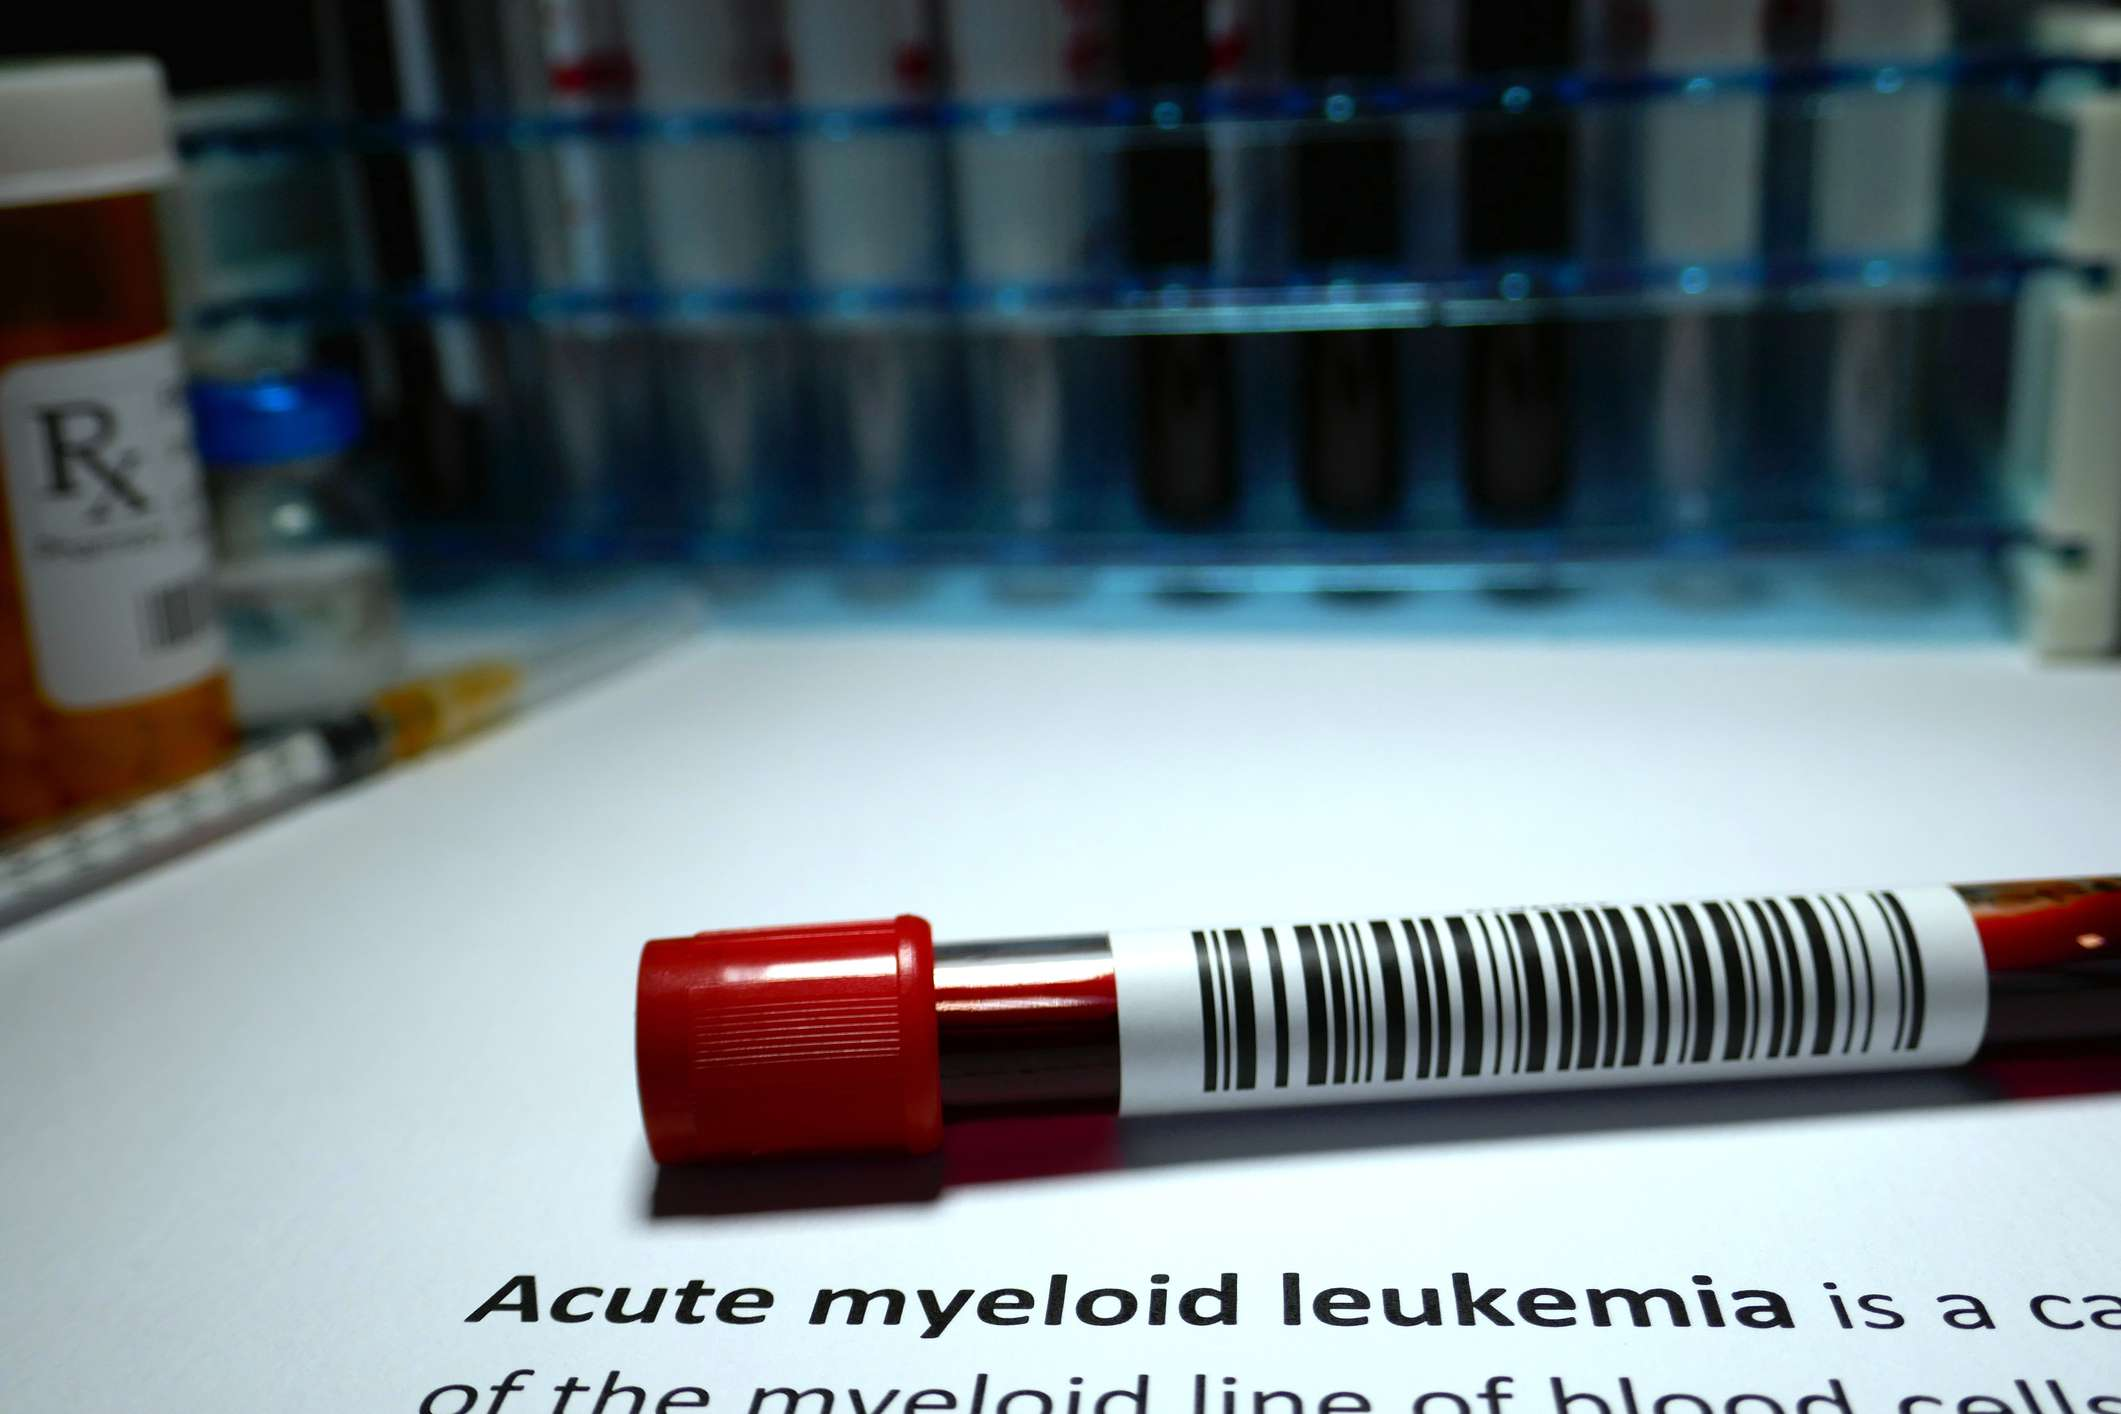 Vial of blood with the definition of acute myeloid leukemia beneath this.